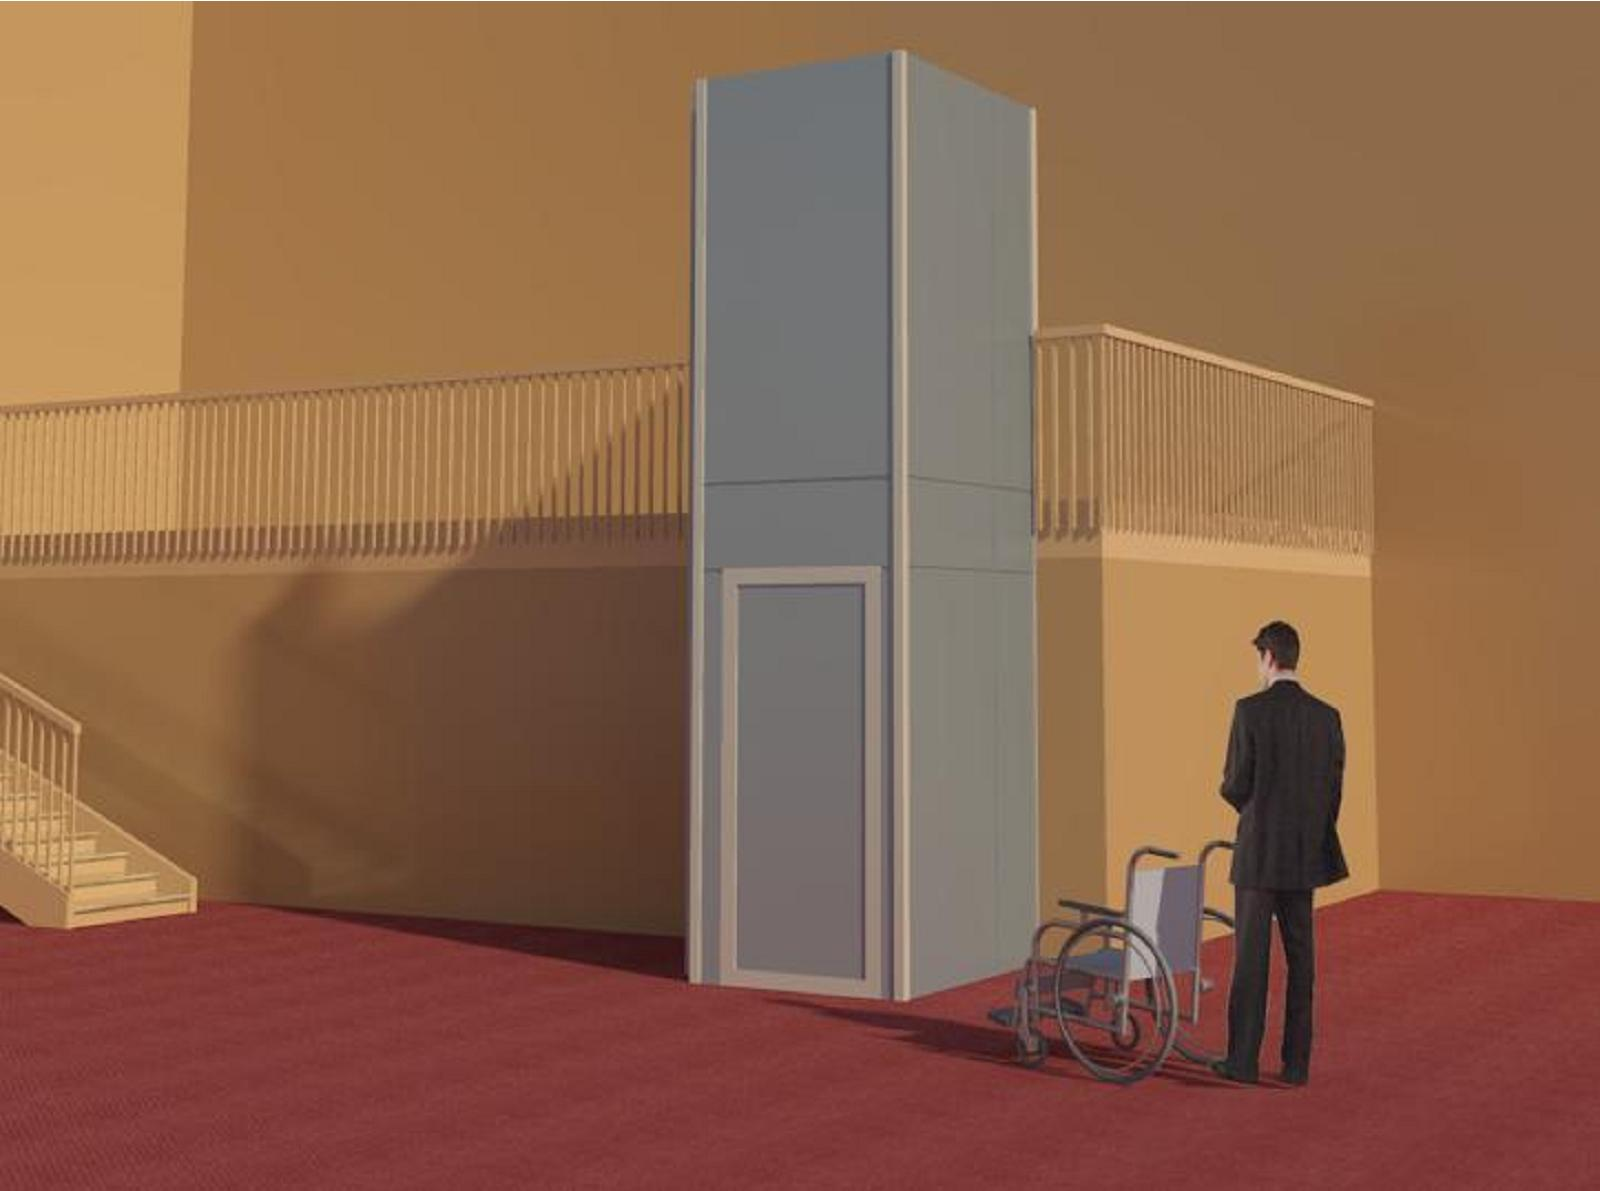 Garaventa lift wheelchair lifts bim objects families for Garaventa lift